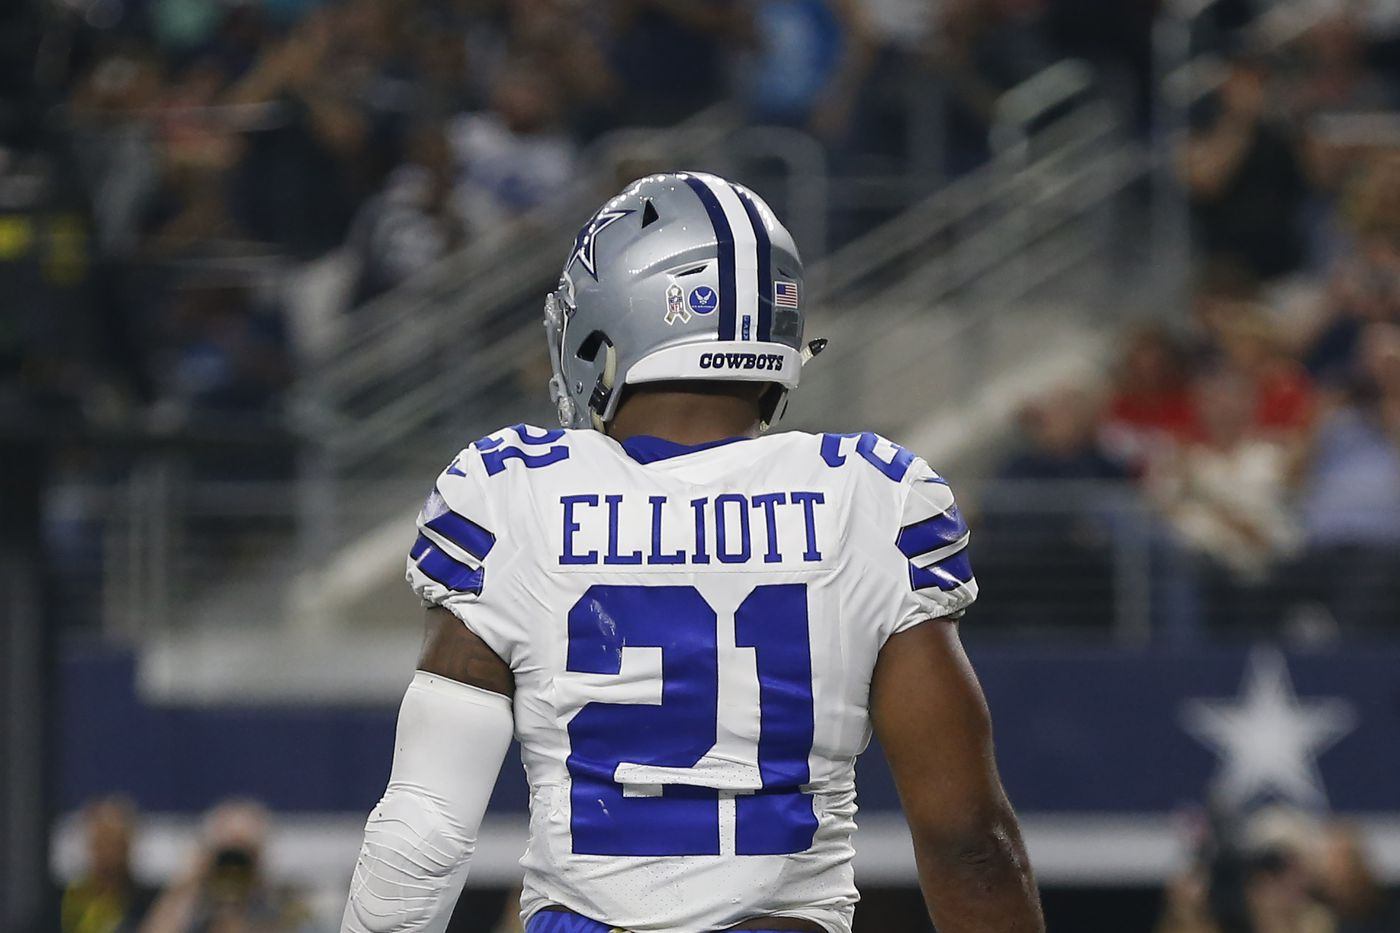 meet 2a86f 636c1 The Ezekiel Elliott suspension explained in a 2-minute read ...